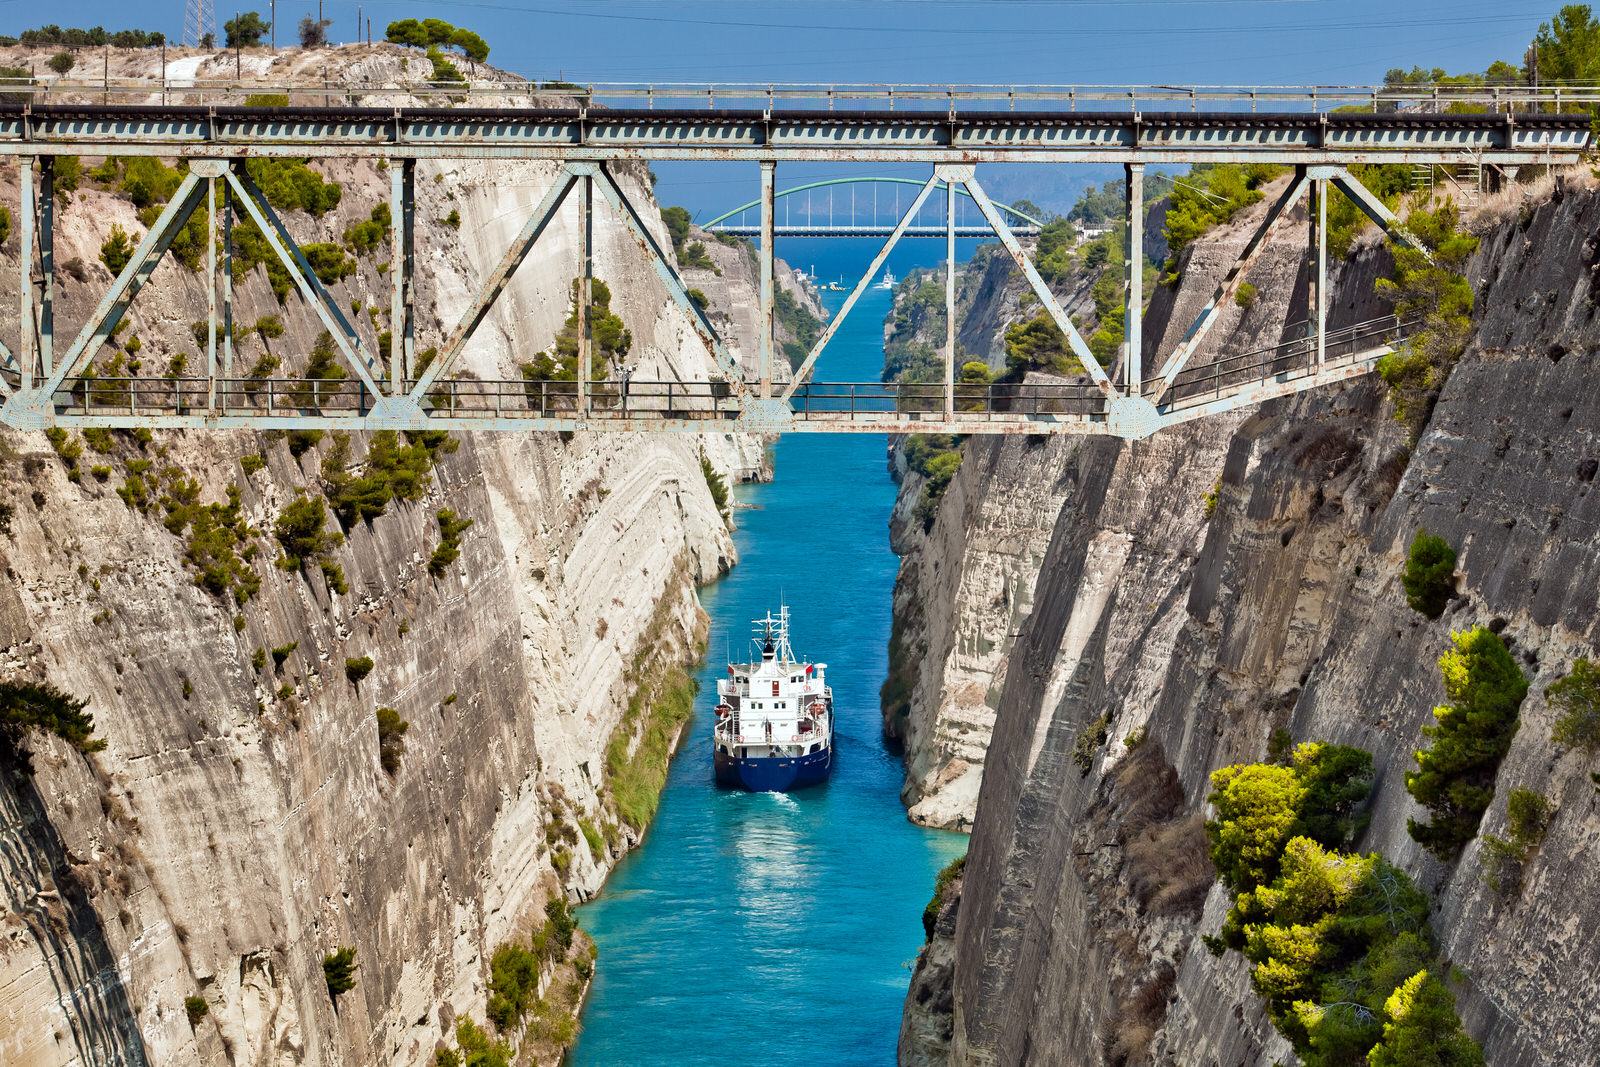 Corinth Canal in Corinthia Lonely Planet